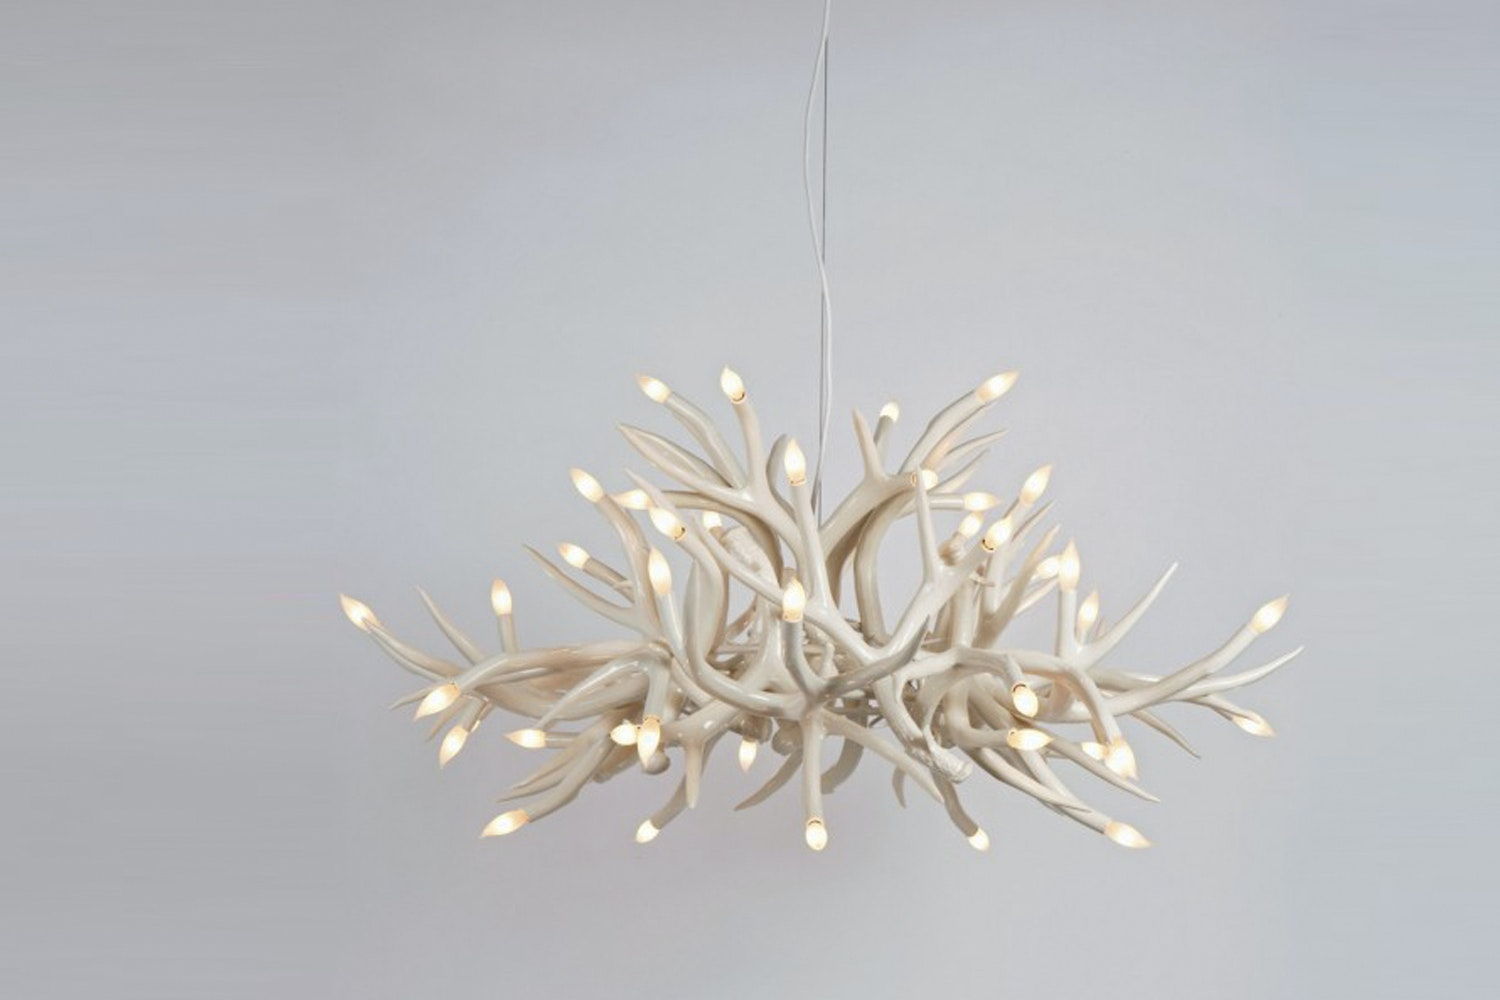 Superordinate Antler Chandelier - 24 Antlers by Jason Miller for Roll & Hill